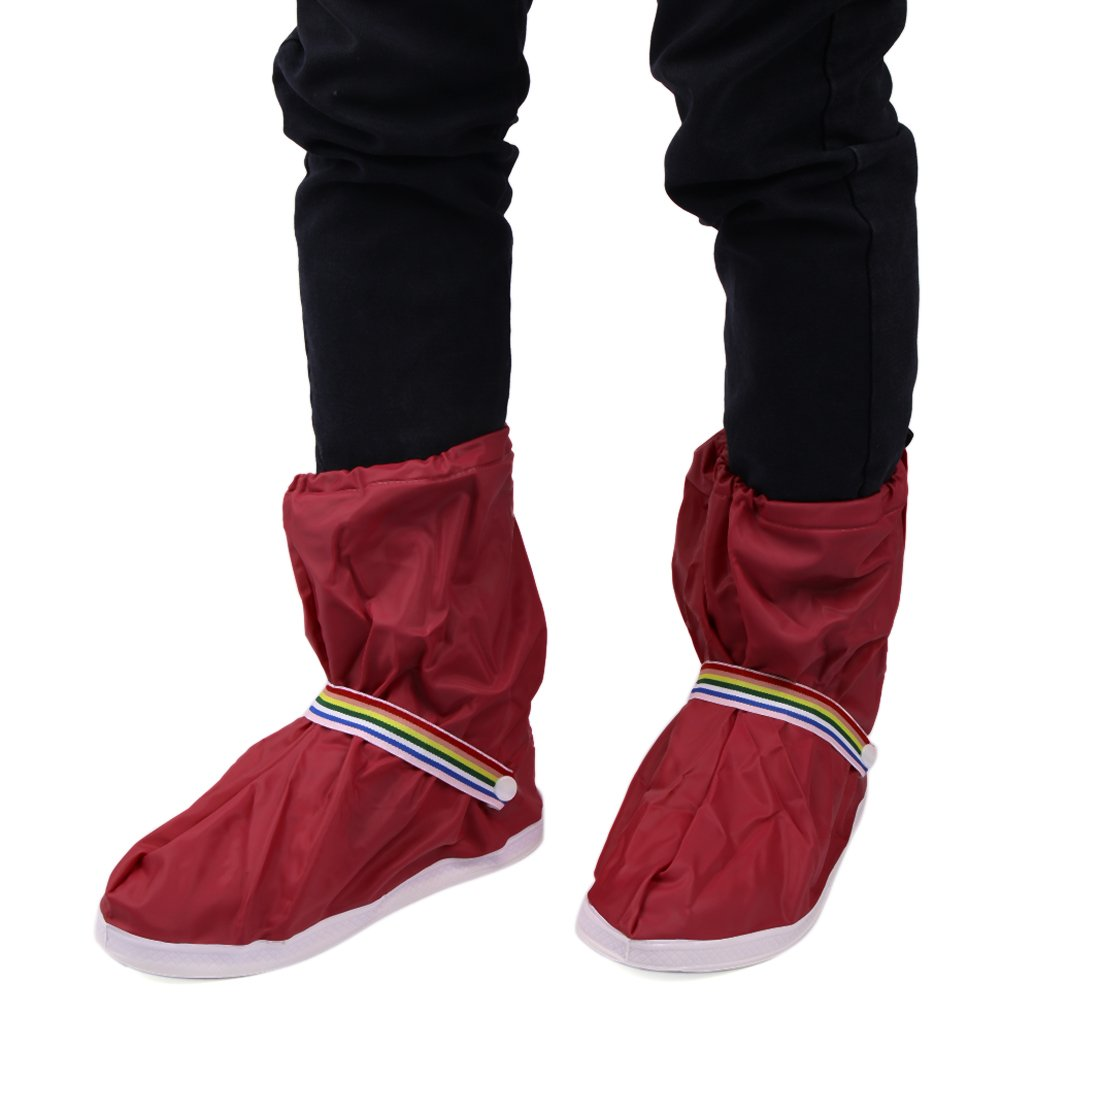 uxcell 1Pair Wine Red Motorcycle Non-Slip Waterproof Adjustable Rain Shoes Boot Cover L